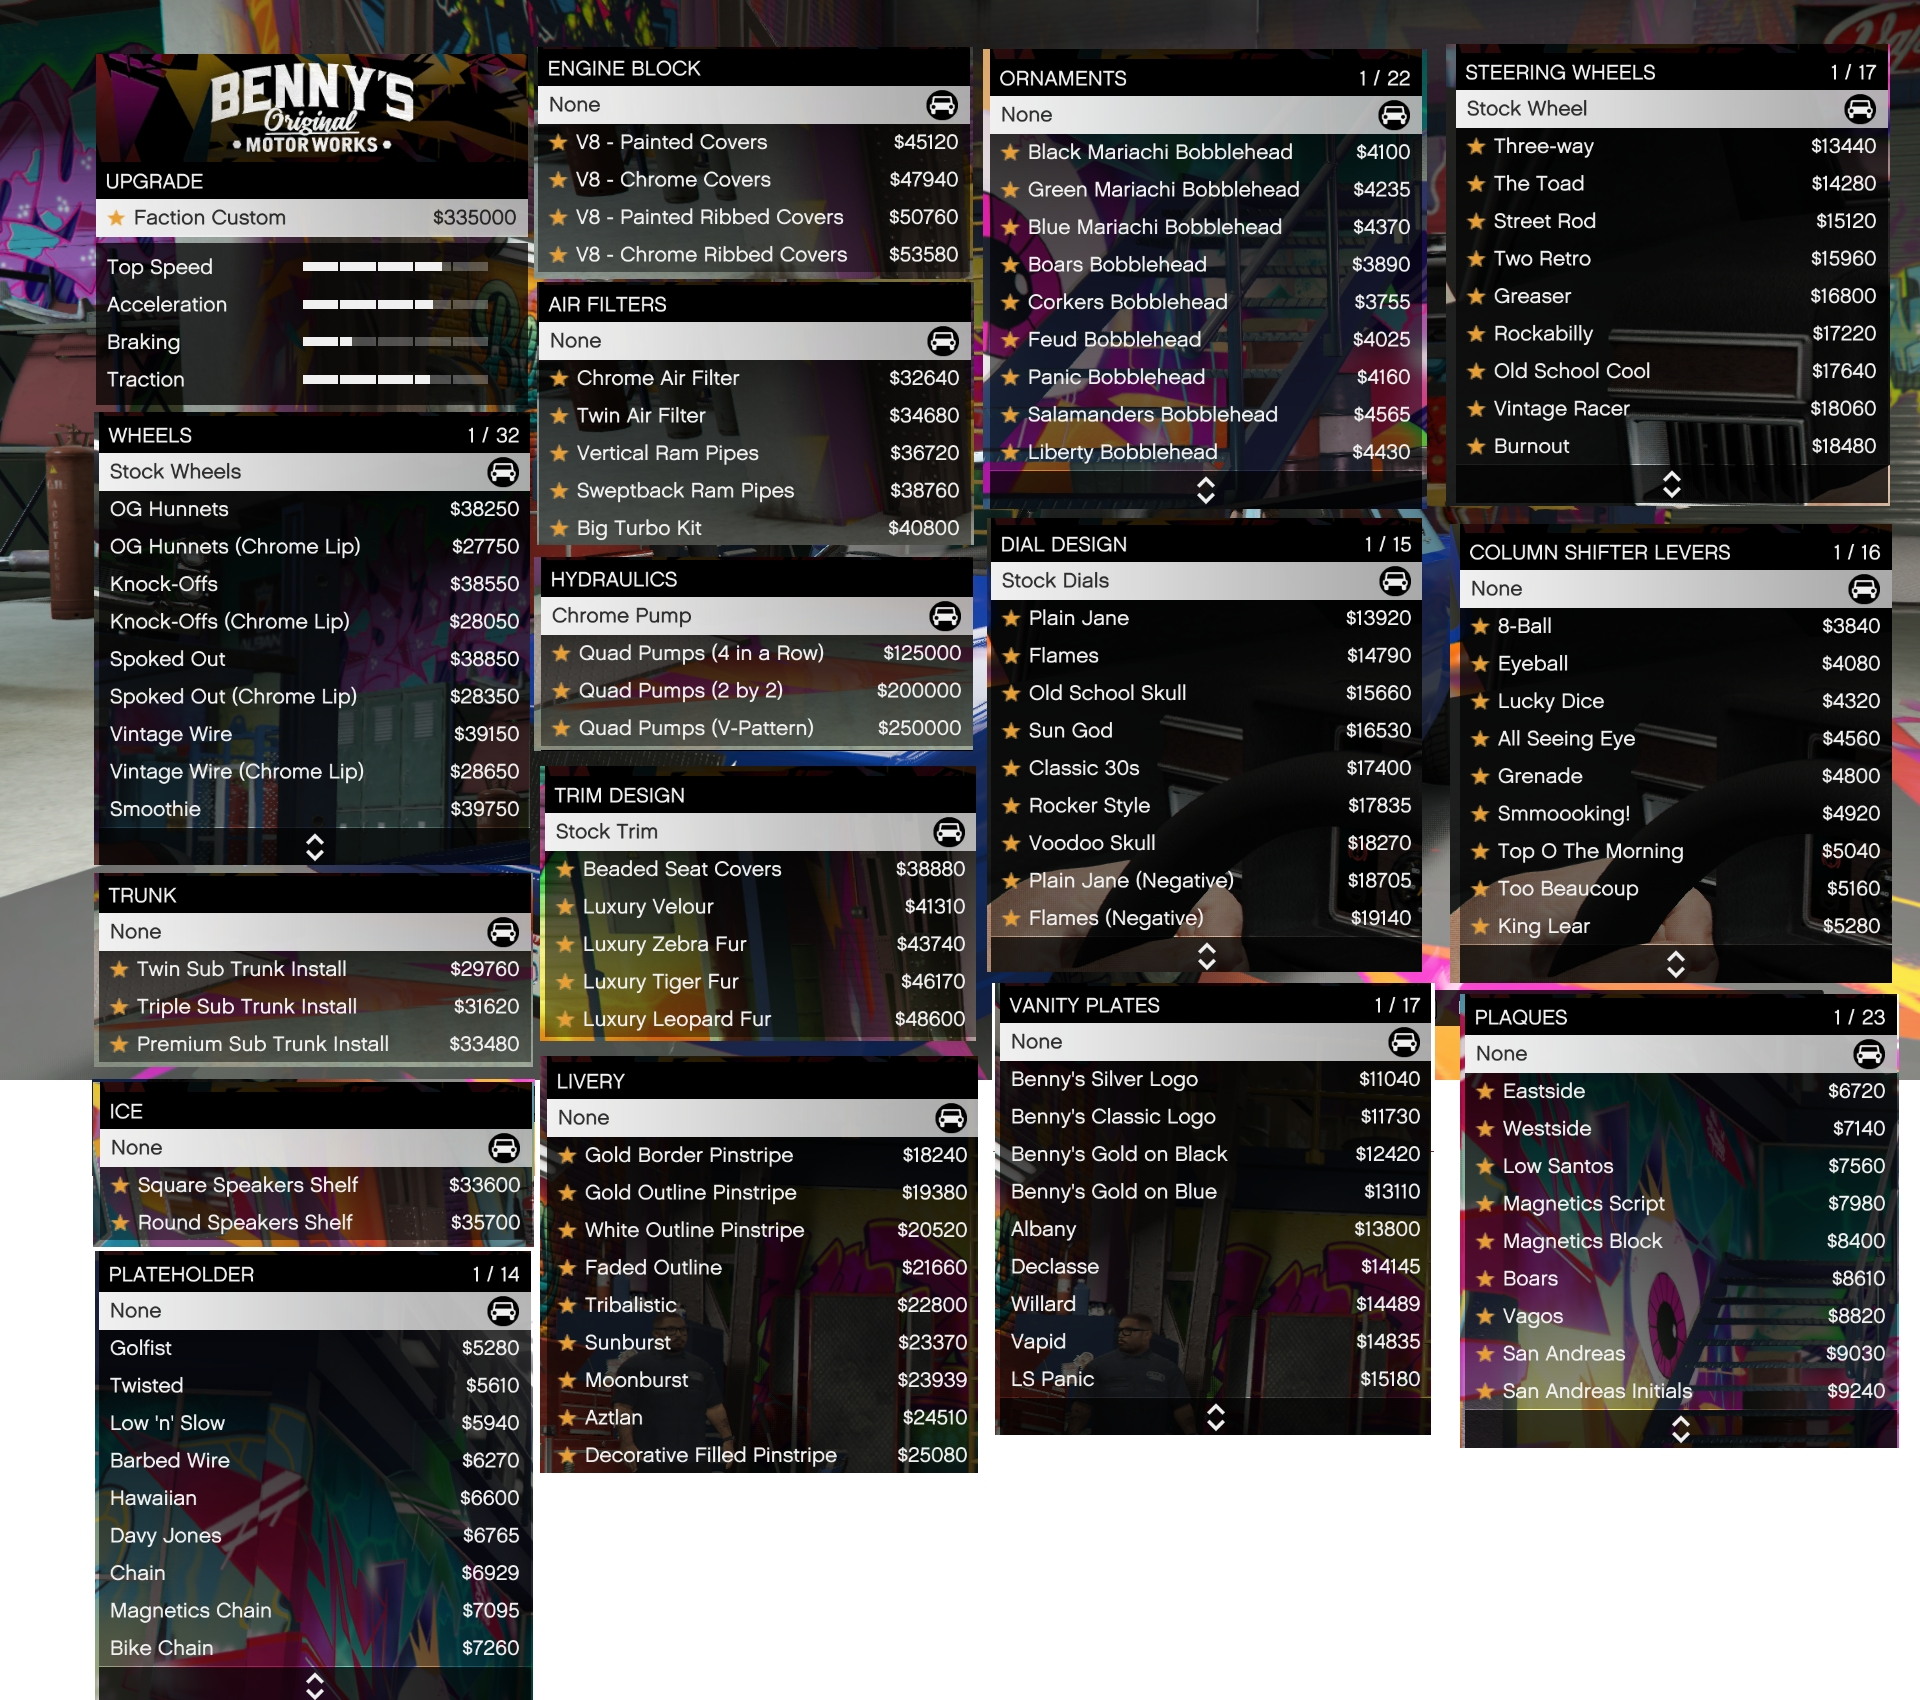 GTA V Patch 1.30 Changelog, Images And Price For New And